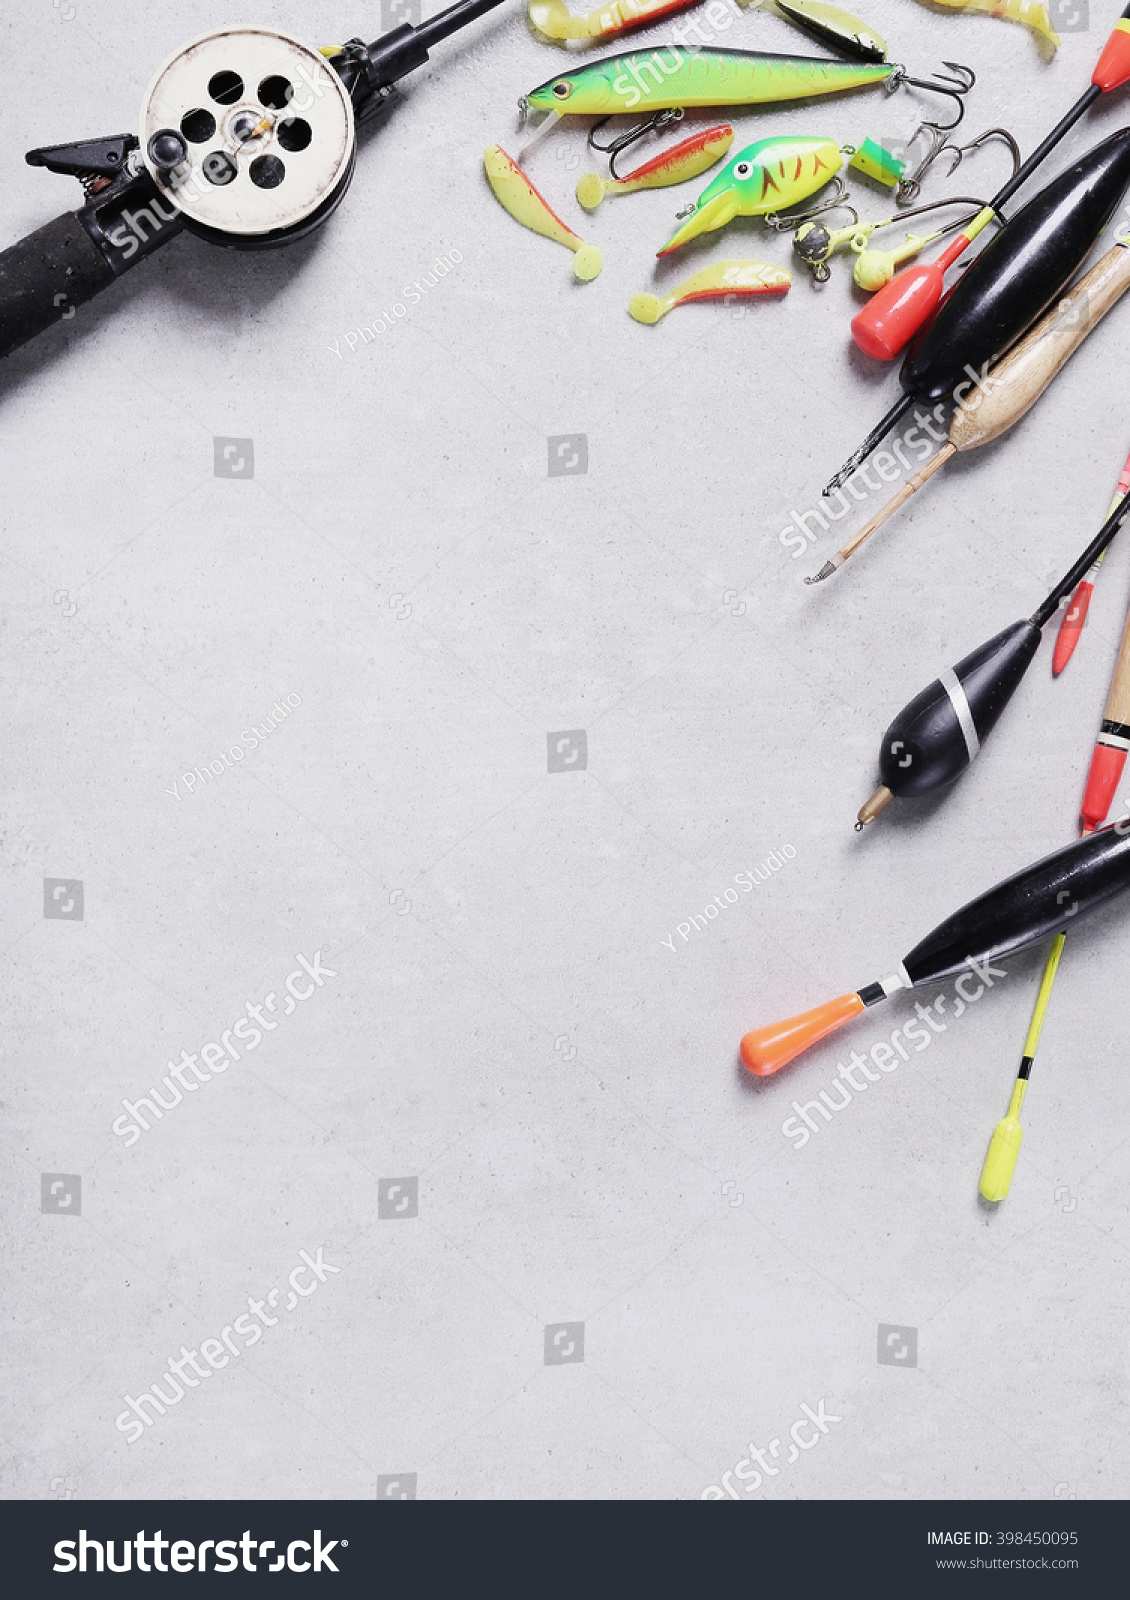 Fishing tools and accessories on the table   EZ Canvas